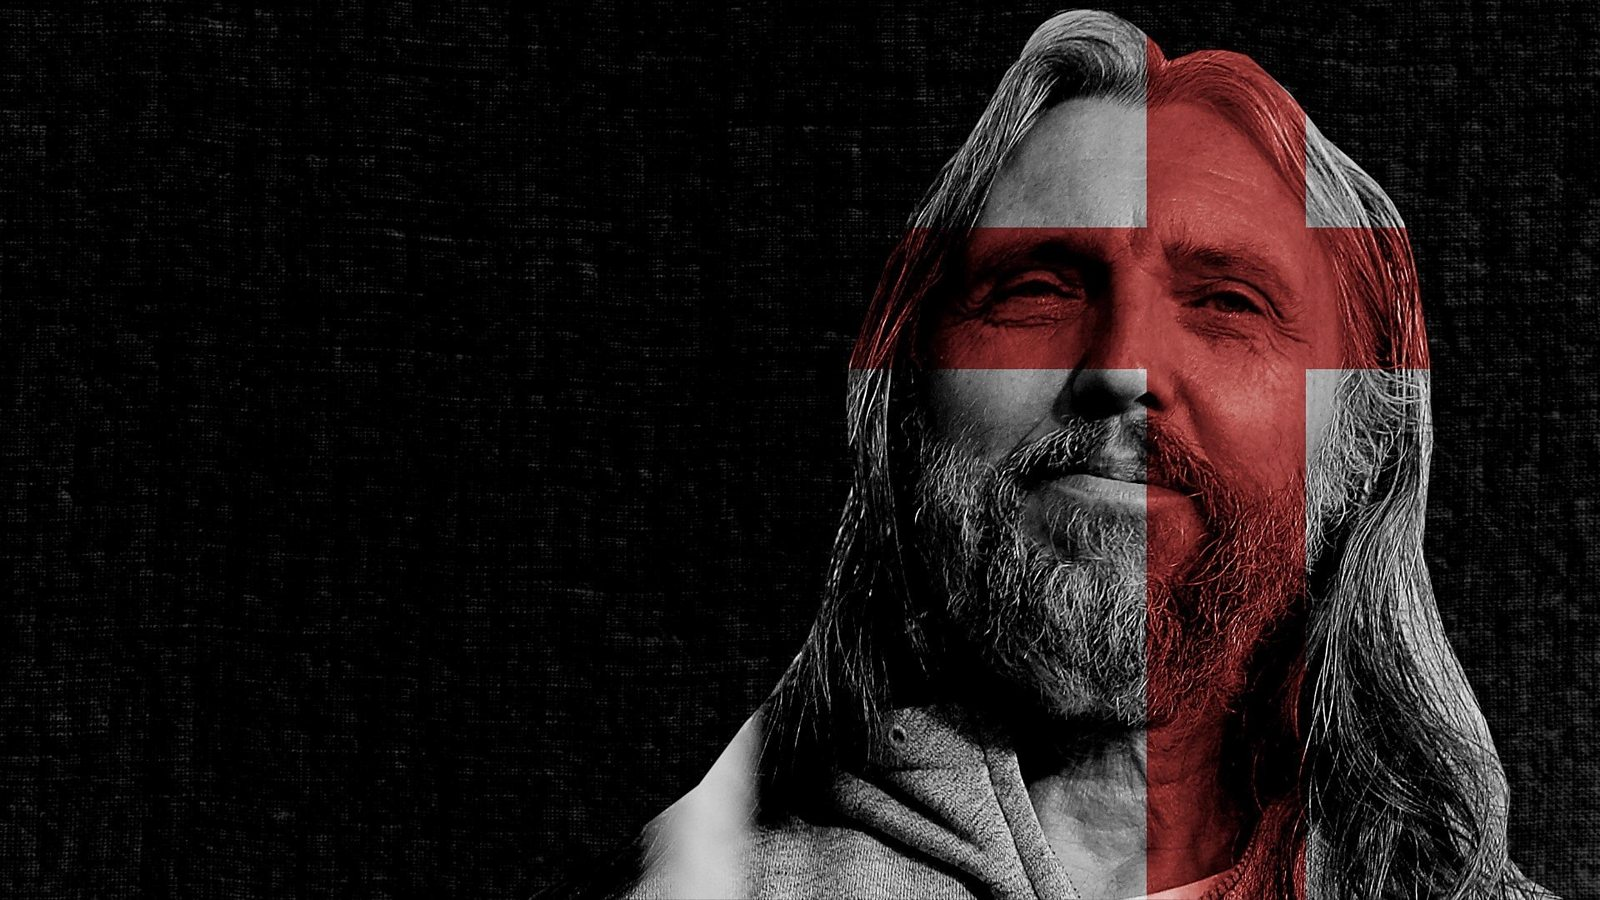 Long watch: Is this Russian cult leader a fraud?